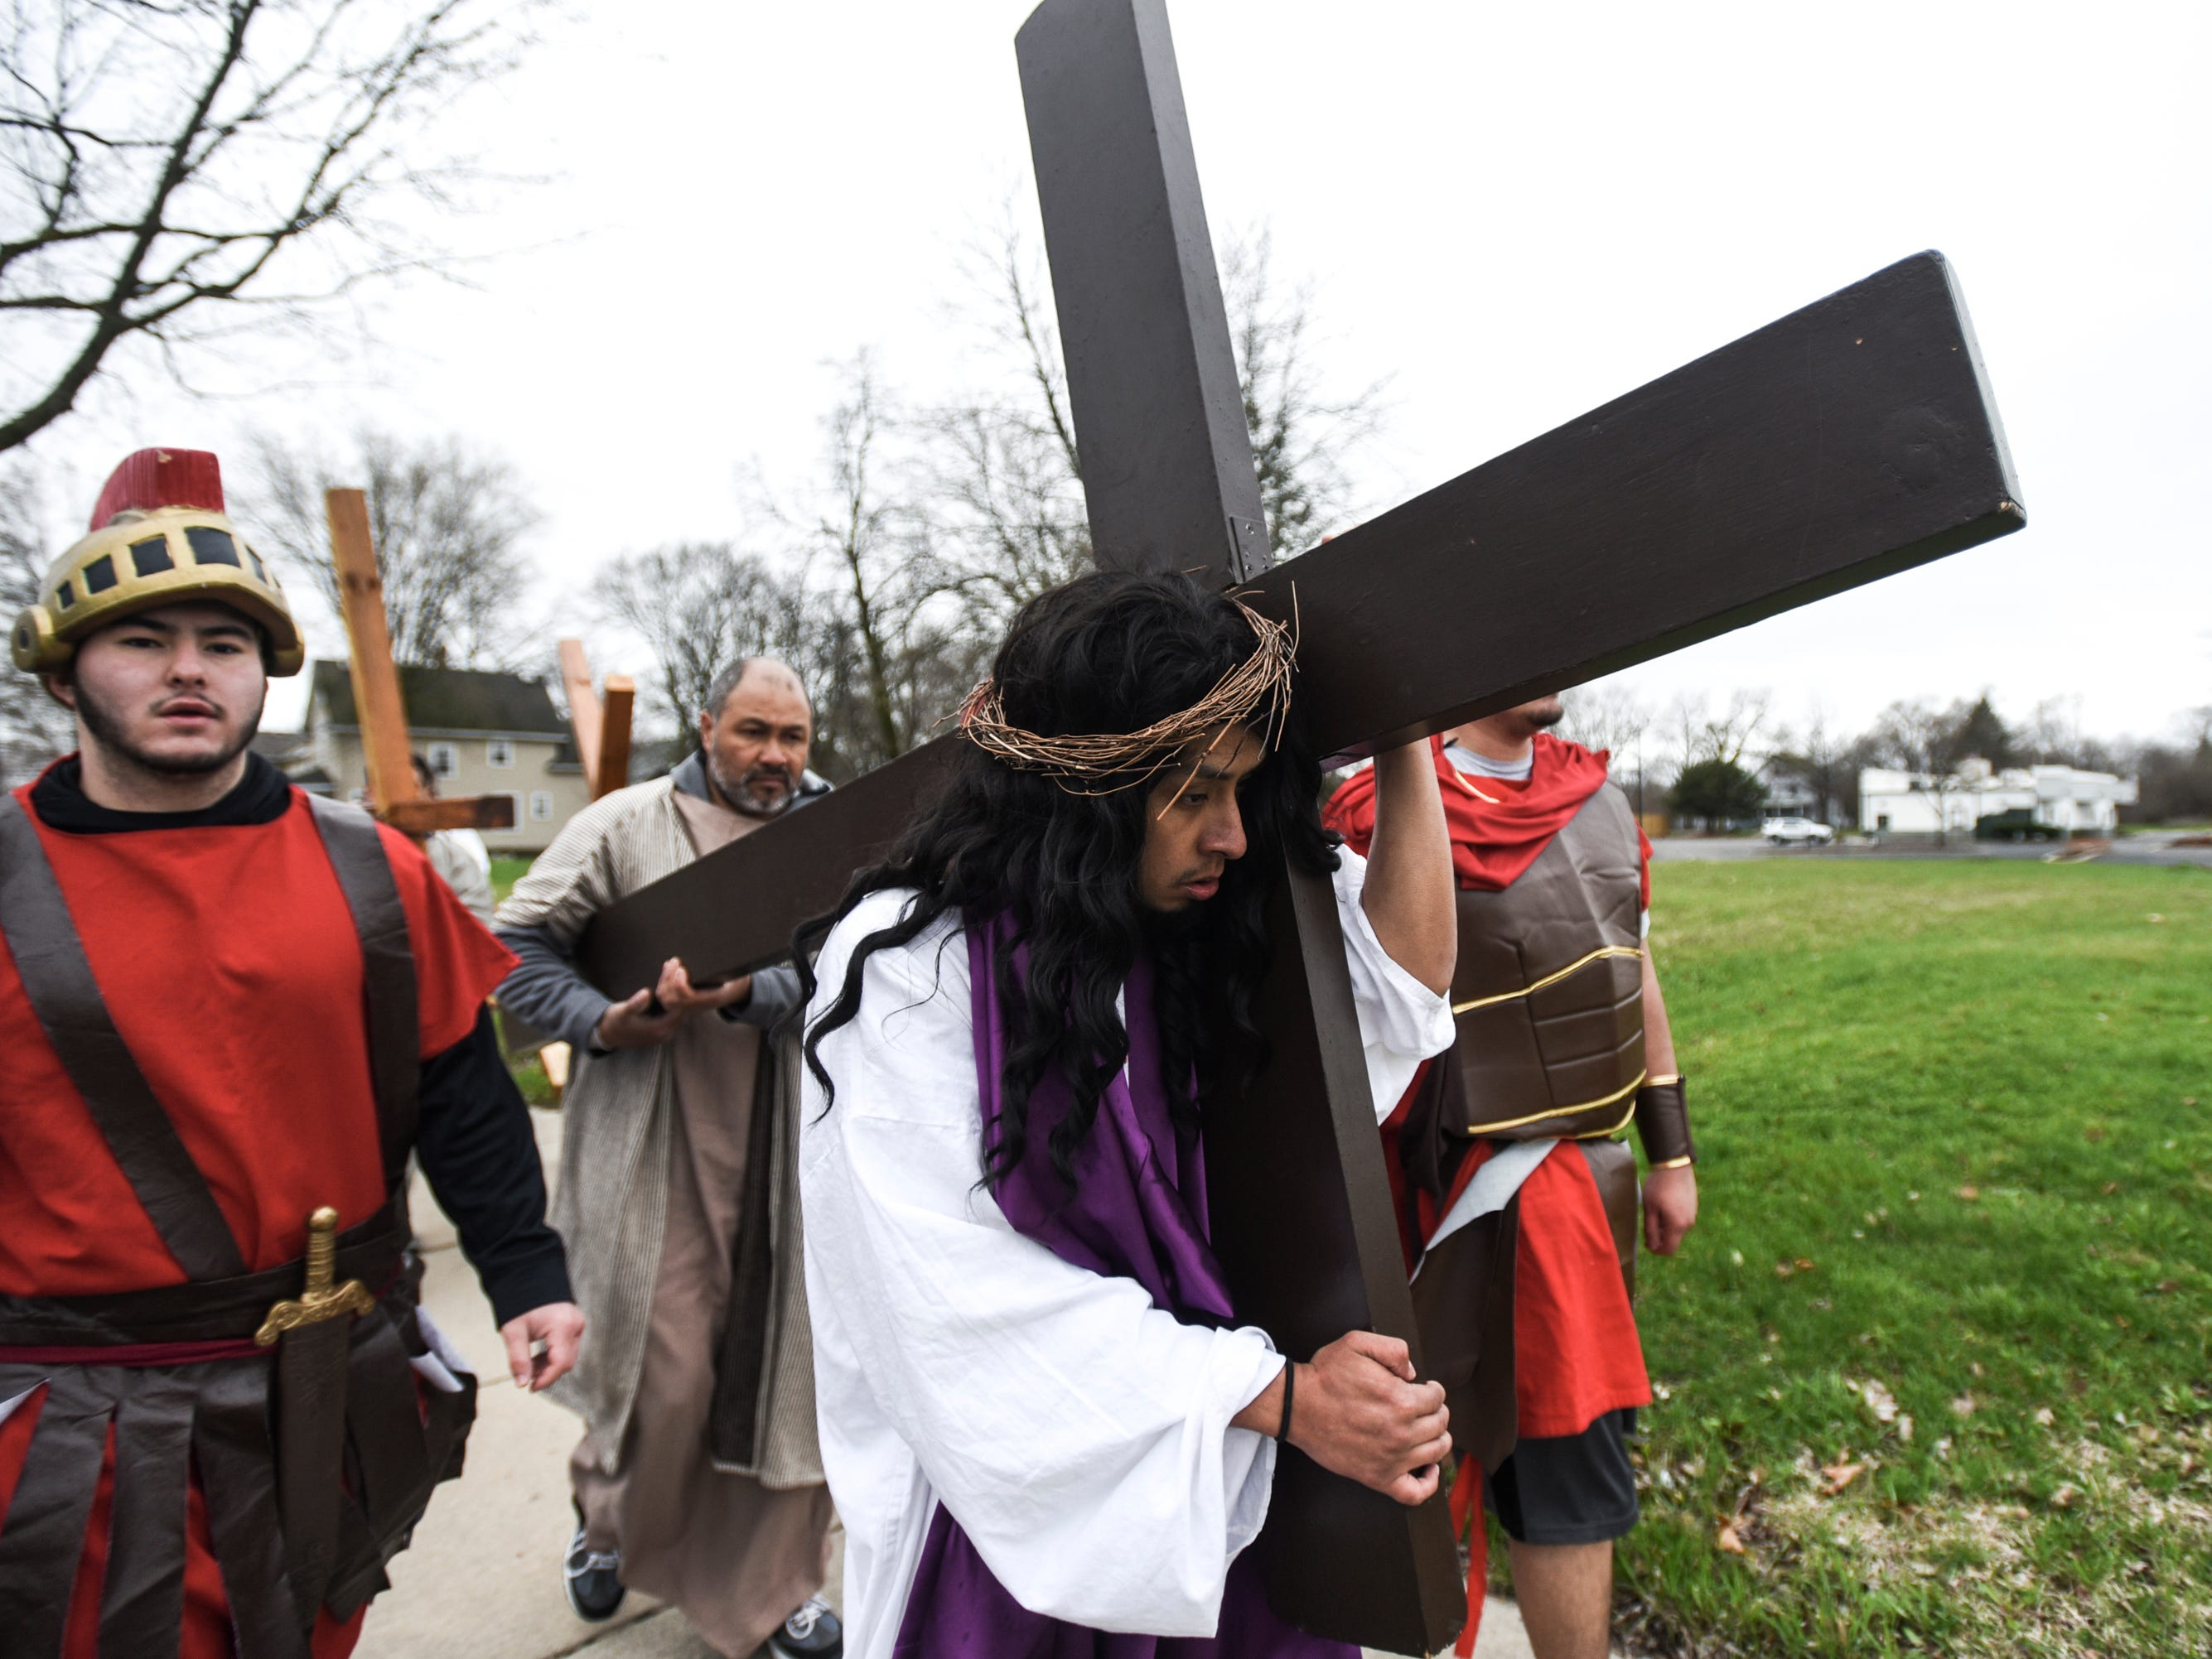 """David Ponce, portraying Jesus, carries a cross through downtown Lansing along N. Larch Street as part of Cristo Rey's """"Stations of the Cross,"""" Friday, April 19, 2019.  The service started on the steps of the Capitol with the reenactment of Jesus being condemned to death and concluded at the Cristo Rey Community Center with the crucifixion followed by a Good Friday service."""